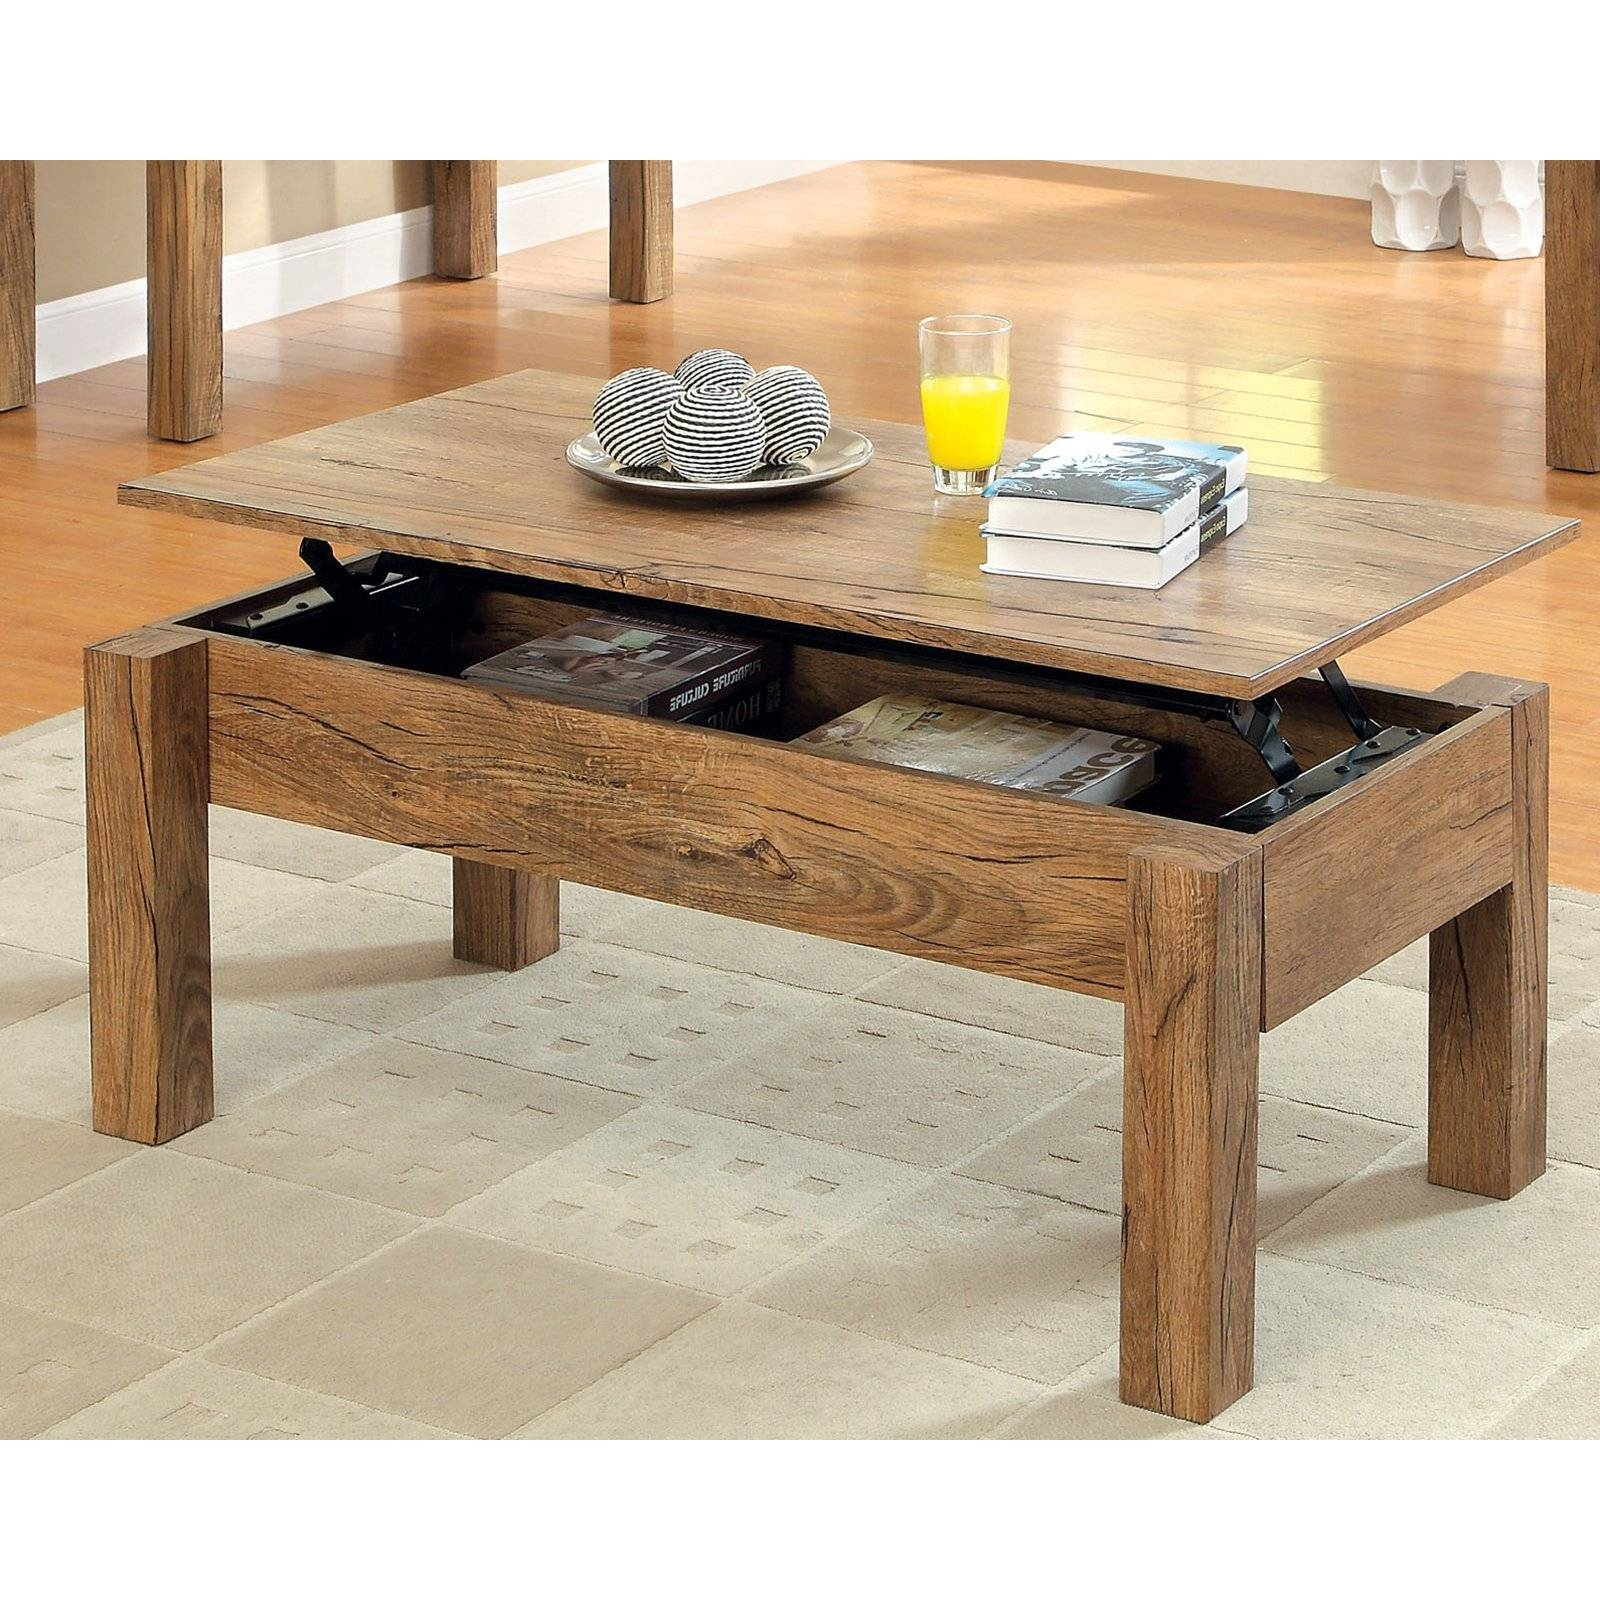 Lift Top Storage Coffee Table Unique Rustic Coffee Table For Cheap in Cheap Lift Top Coffee Tables (Image 14 of 30)